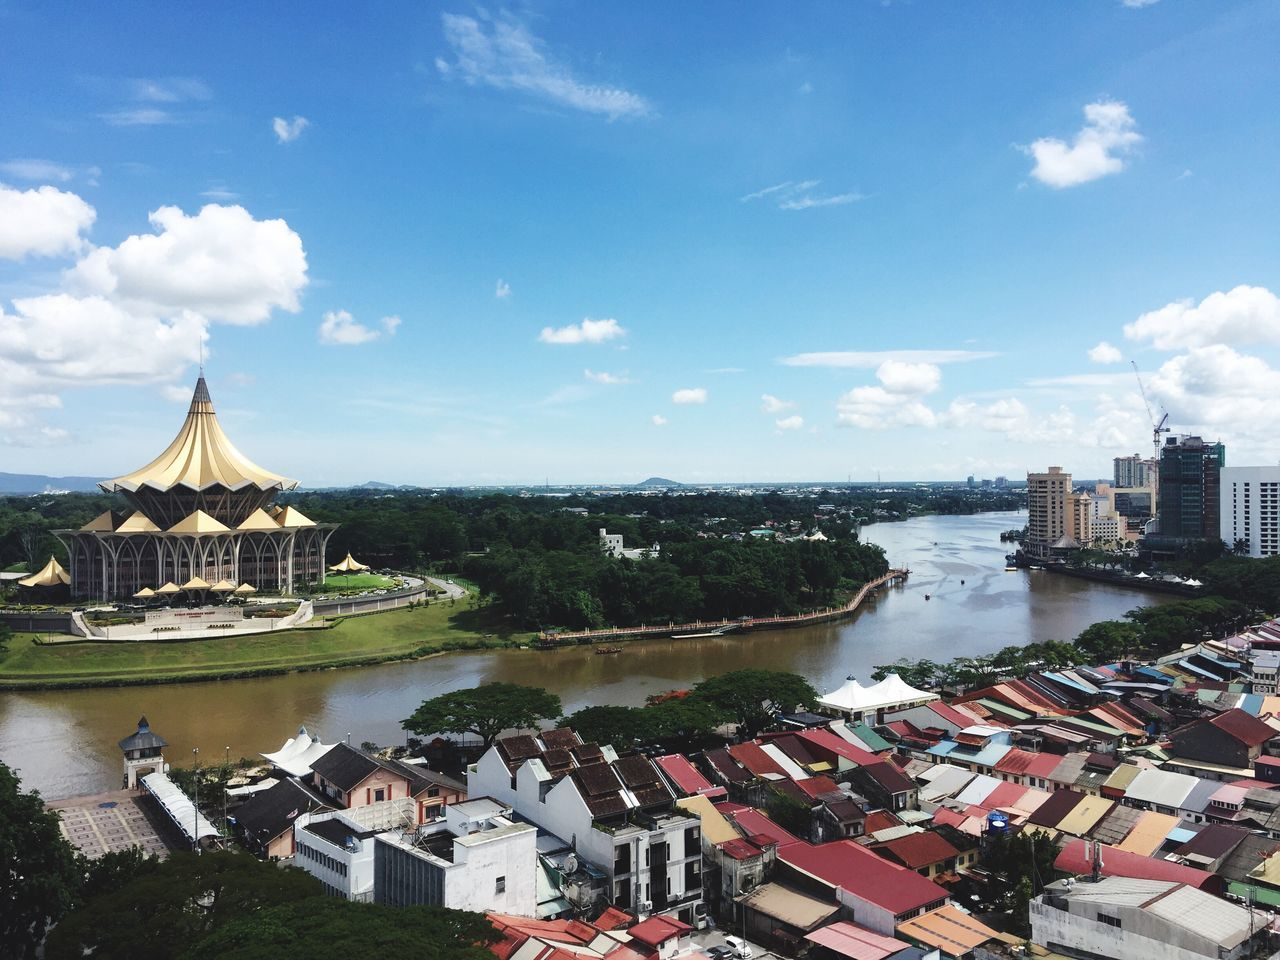 High Angle View Of Houses And Parliament Building At Sarawak